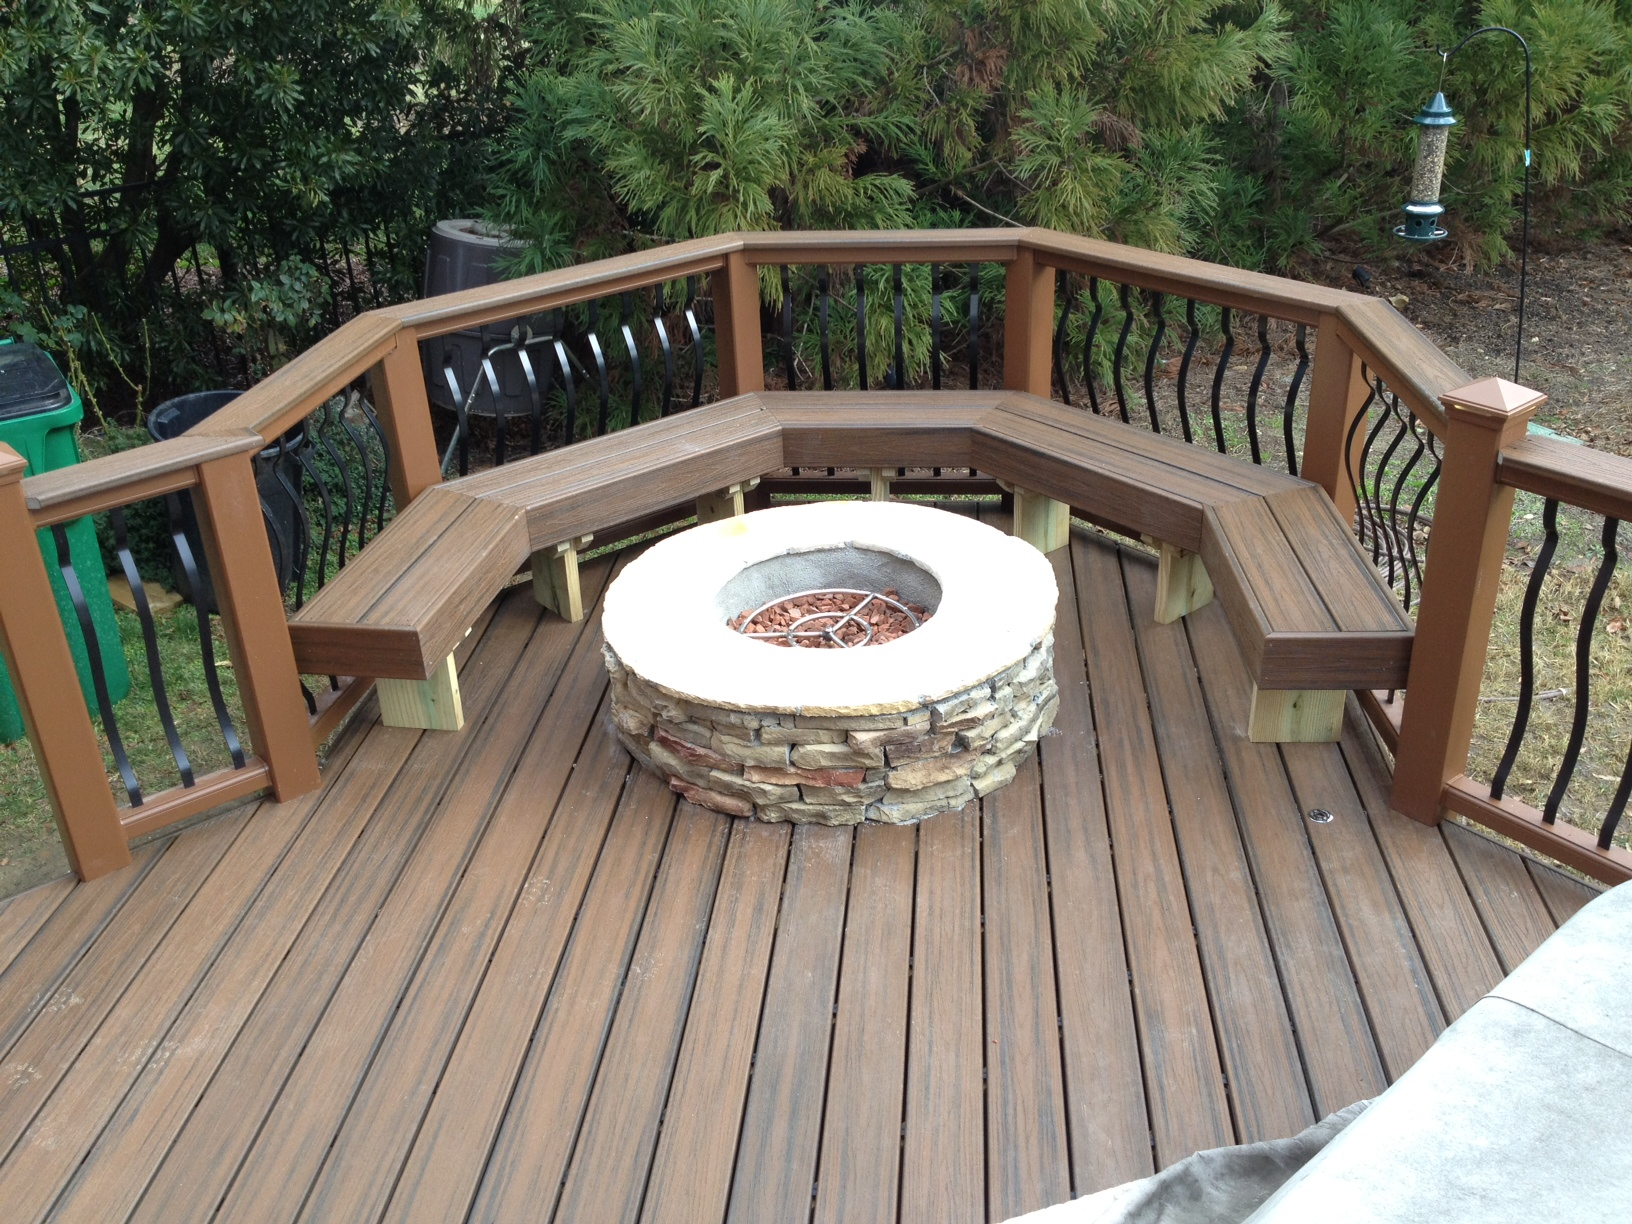 Can You Place A Fire Pit On A Deck Archadeck Of Charlotte intended for dimensions 1632 X 1224